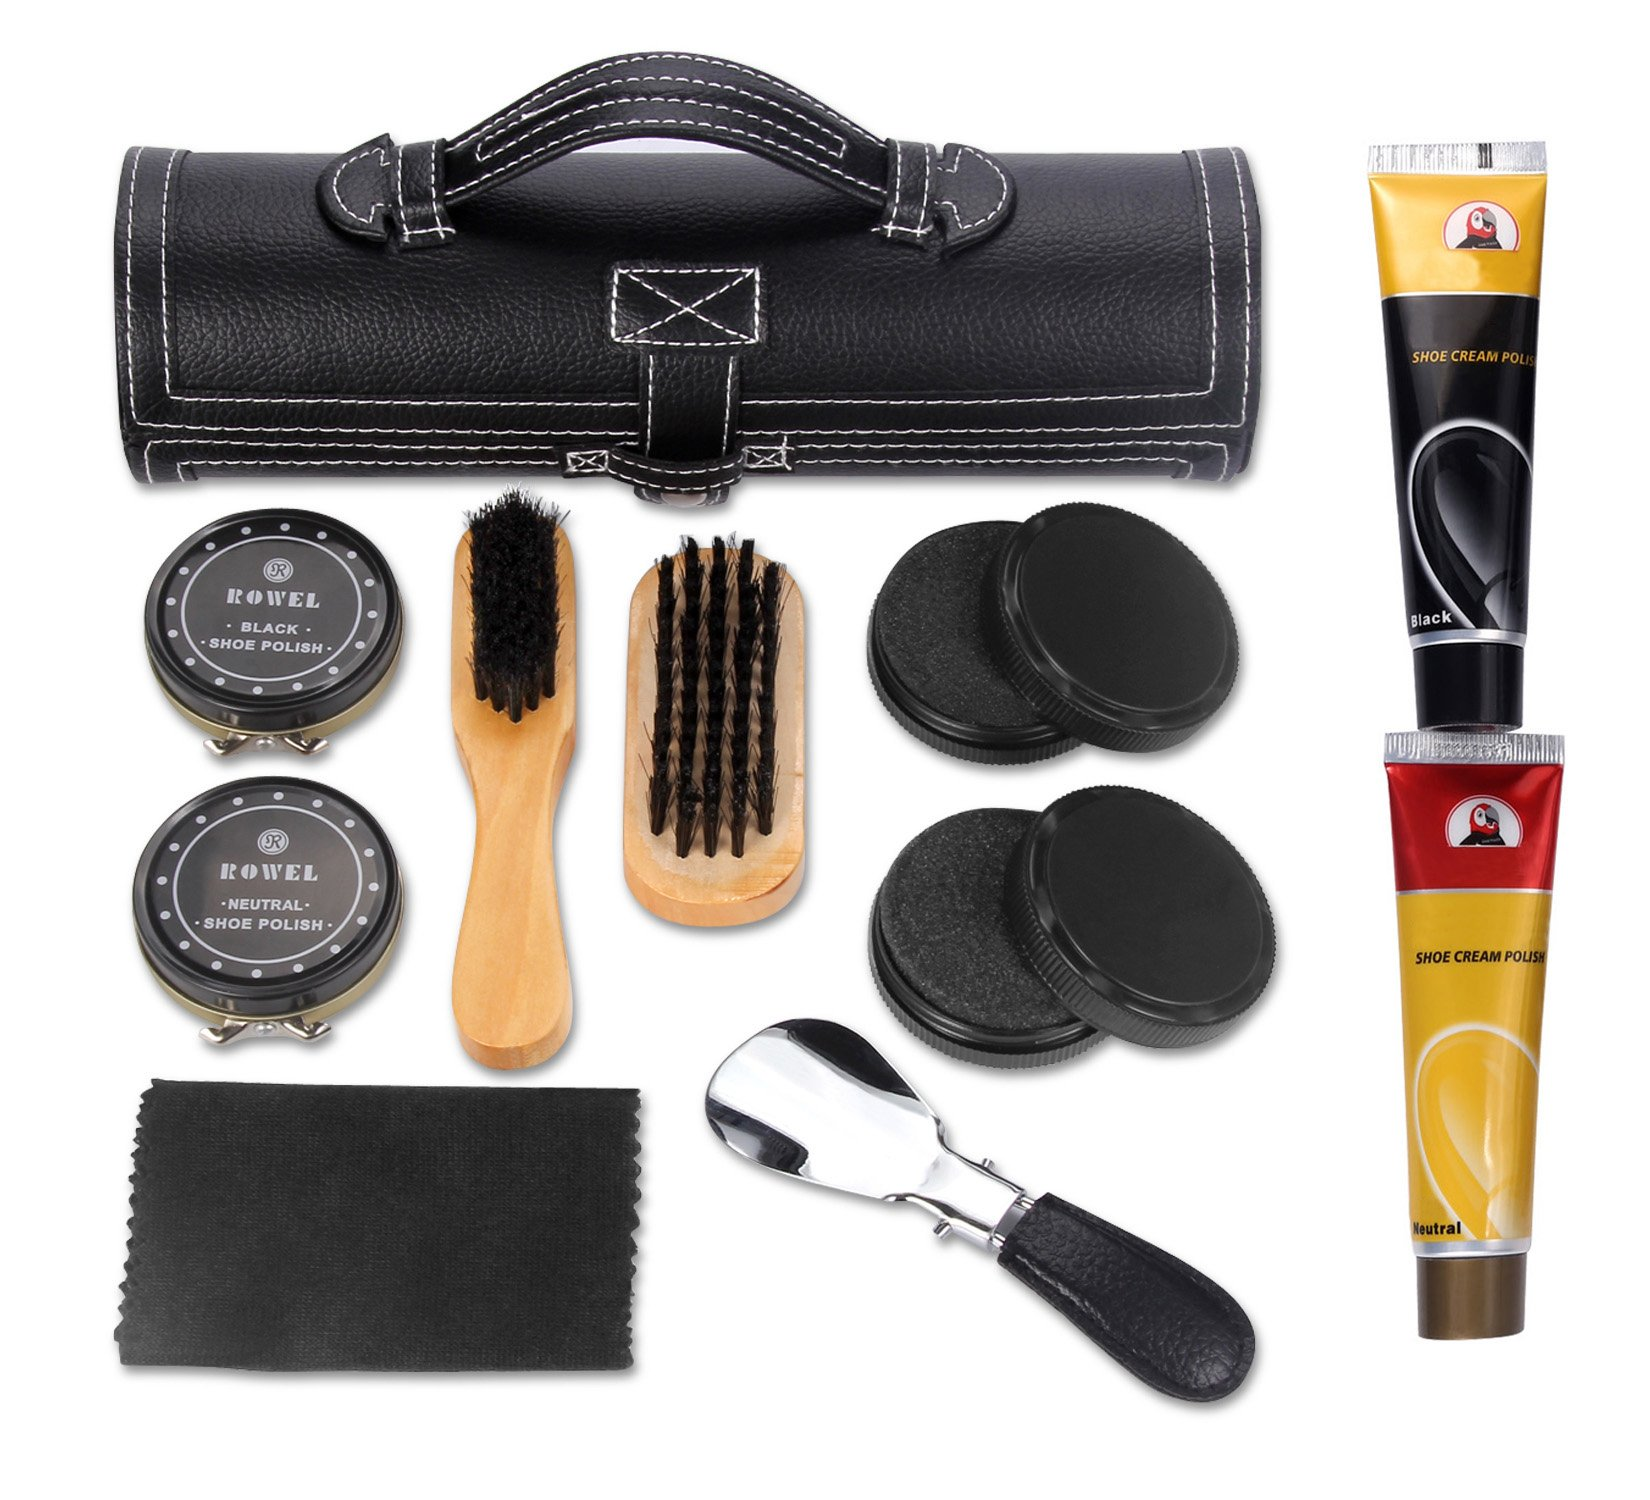 11 in 1 Travel Shoe Shine Kit with PU Leather Sleek Elegant Case Black